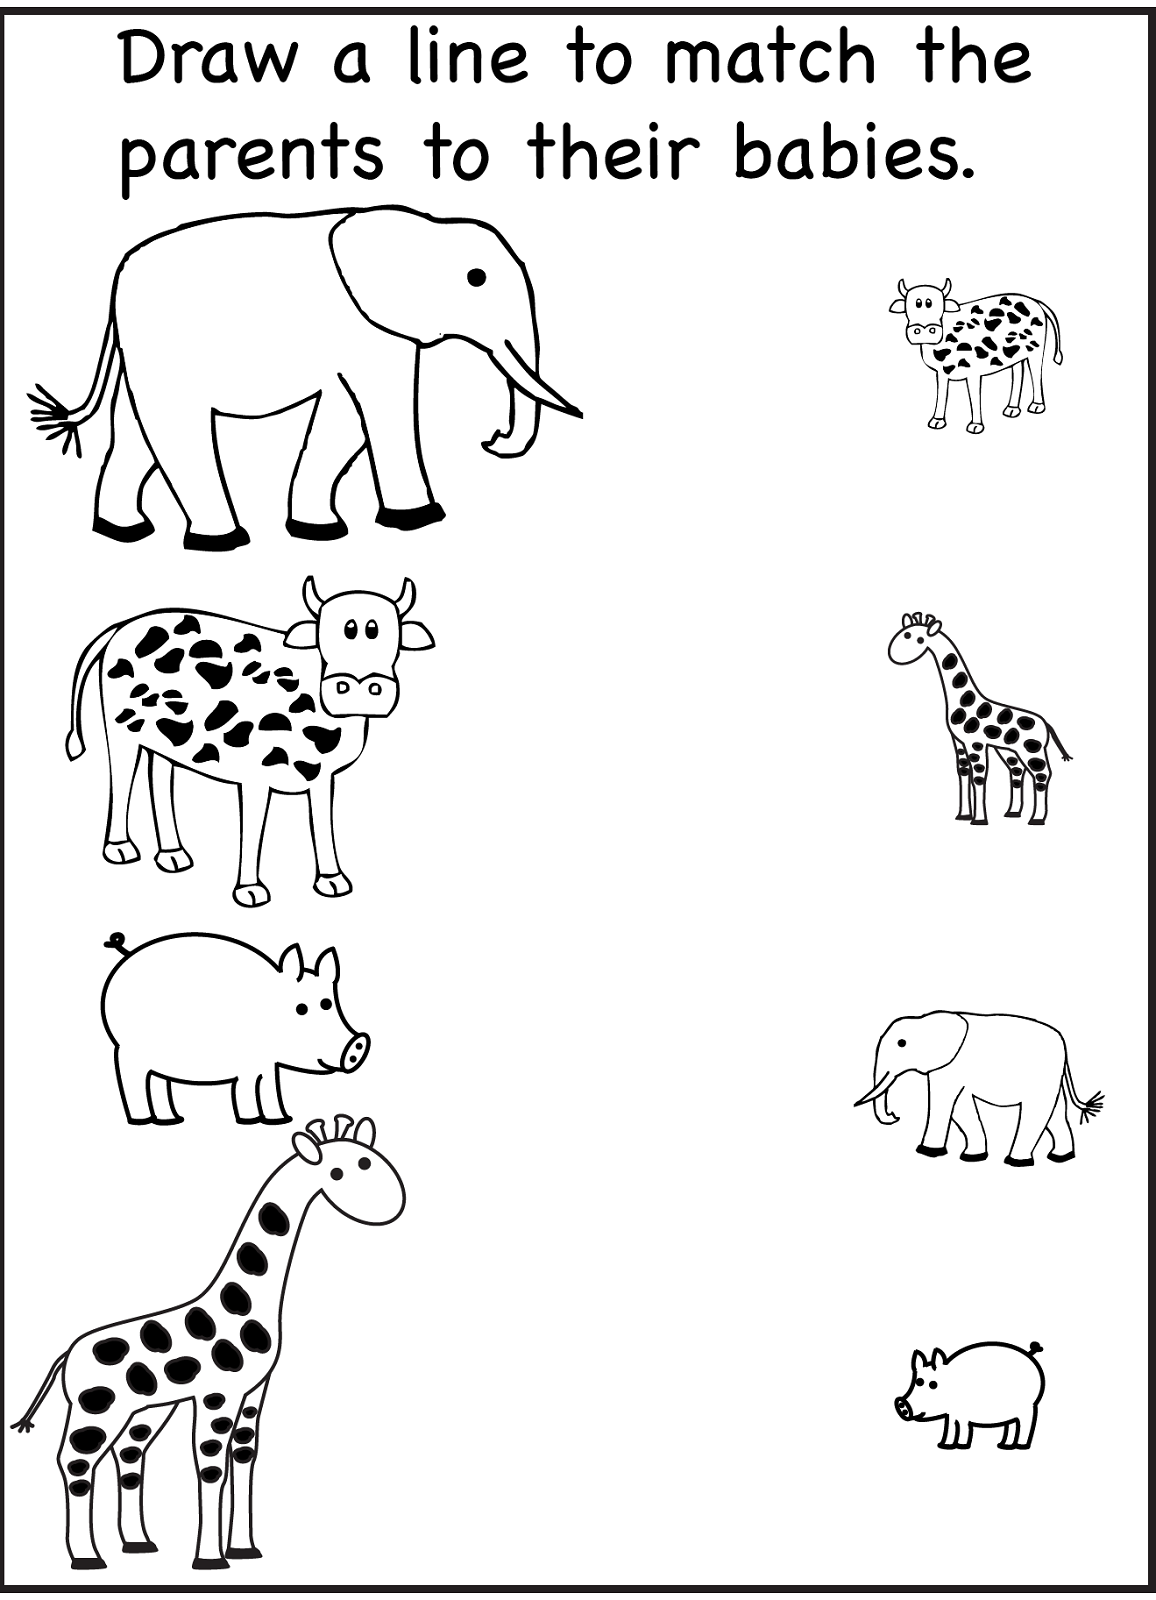 Printable Alphabet Activities For 2 Year Olds Printable Activities For Preschoolers At Home